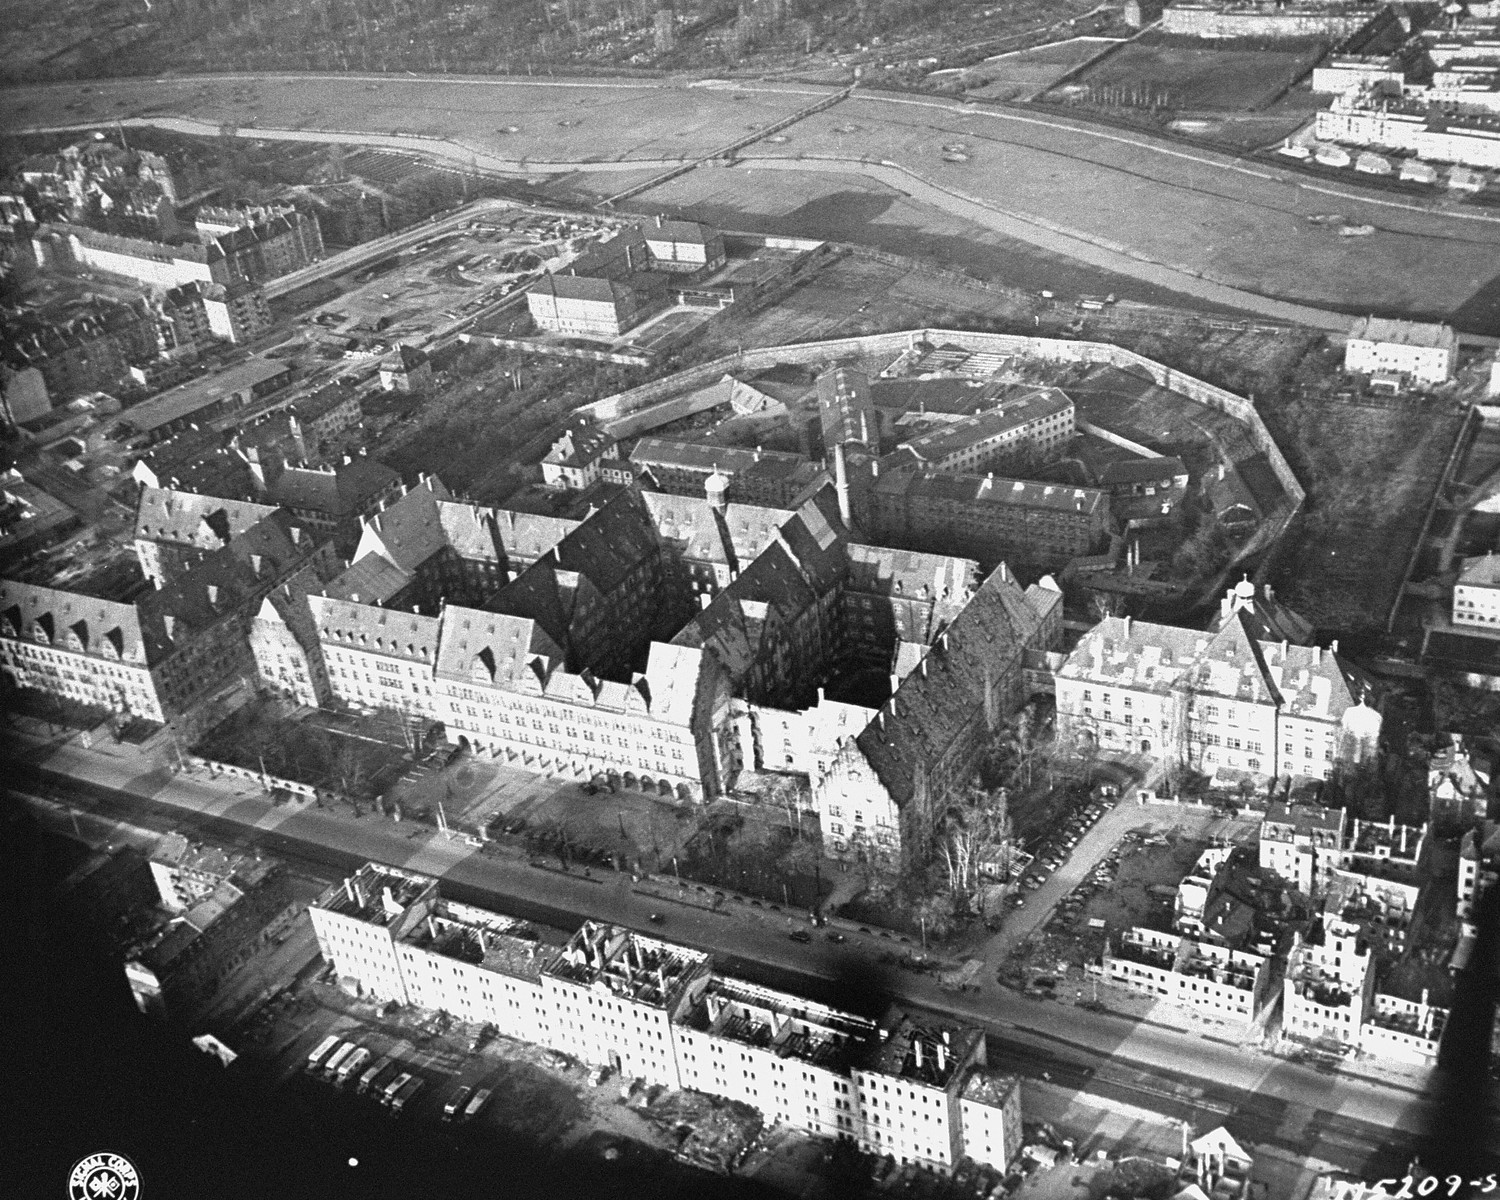 Aerial view of the Nuremberg Palace of Justice and prison, where the war crimes trial of the International Military Tribunal was held and its defendants incarcerated.    In the foreground is the Palace of Justice.  The structure on the right that is connected to the the main building by a passageway, is the location of the actual courtroom.  The main part of the Palace of Justice housed the offices of those working on the IMT.  In the background are the four wings of the Nuremberg prison.  The IMT defendants were housed in the far right wing; the witnesses in the left wing; and other prisoners in the two center wings.